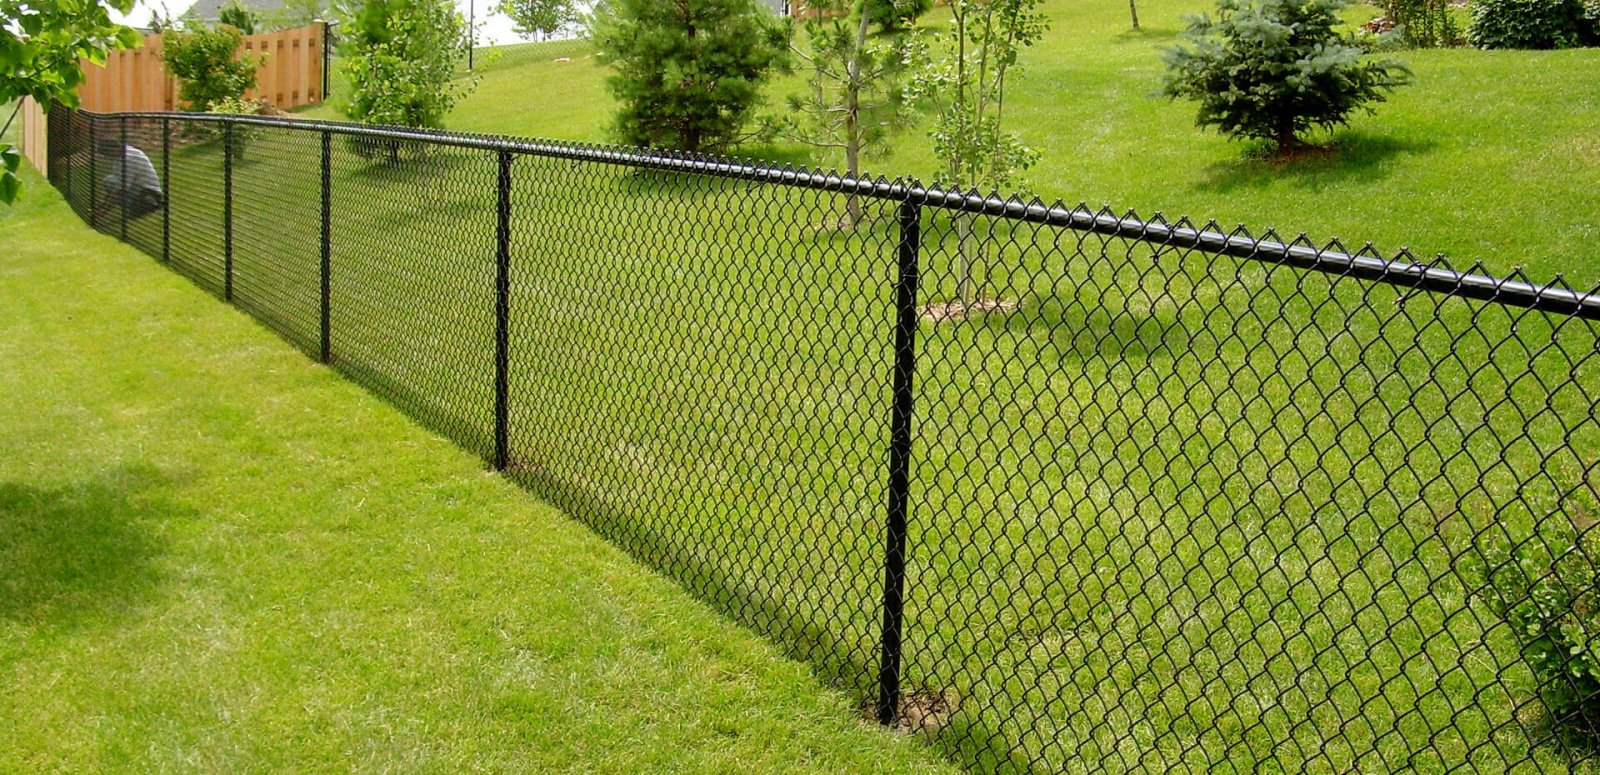 phoca_thumb_l_chain-link-fences